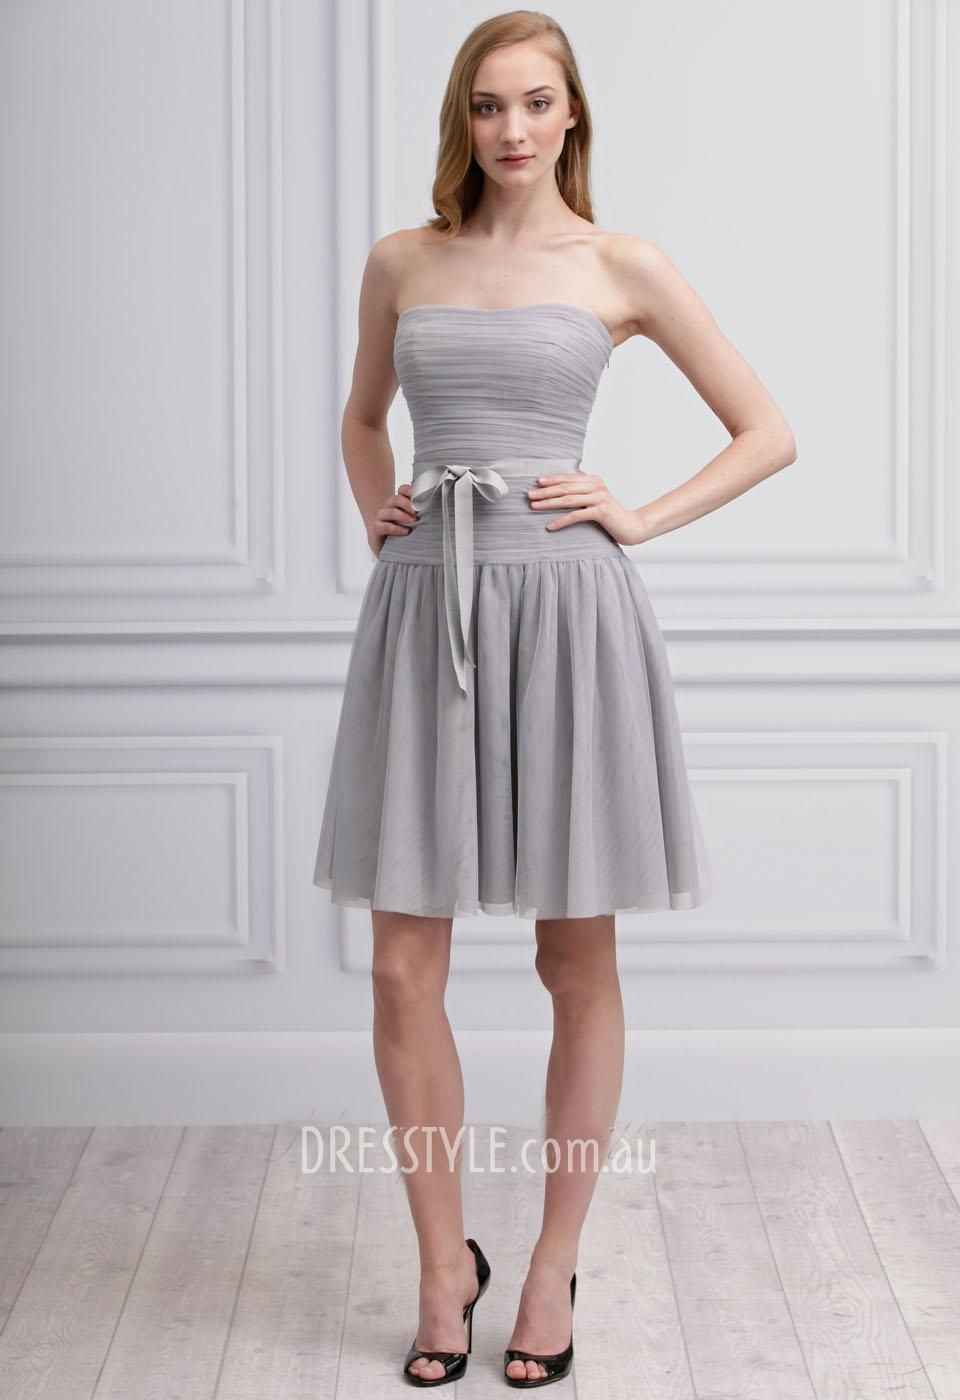 Light grey strapless short a line drop waist full skirt prom light grey strapless short a line drop waist full skirt prom cocktail dress ombrellifo Choice Image